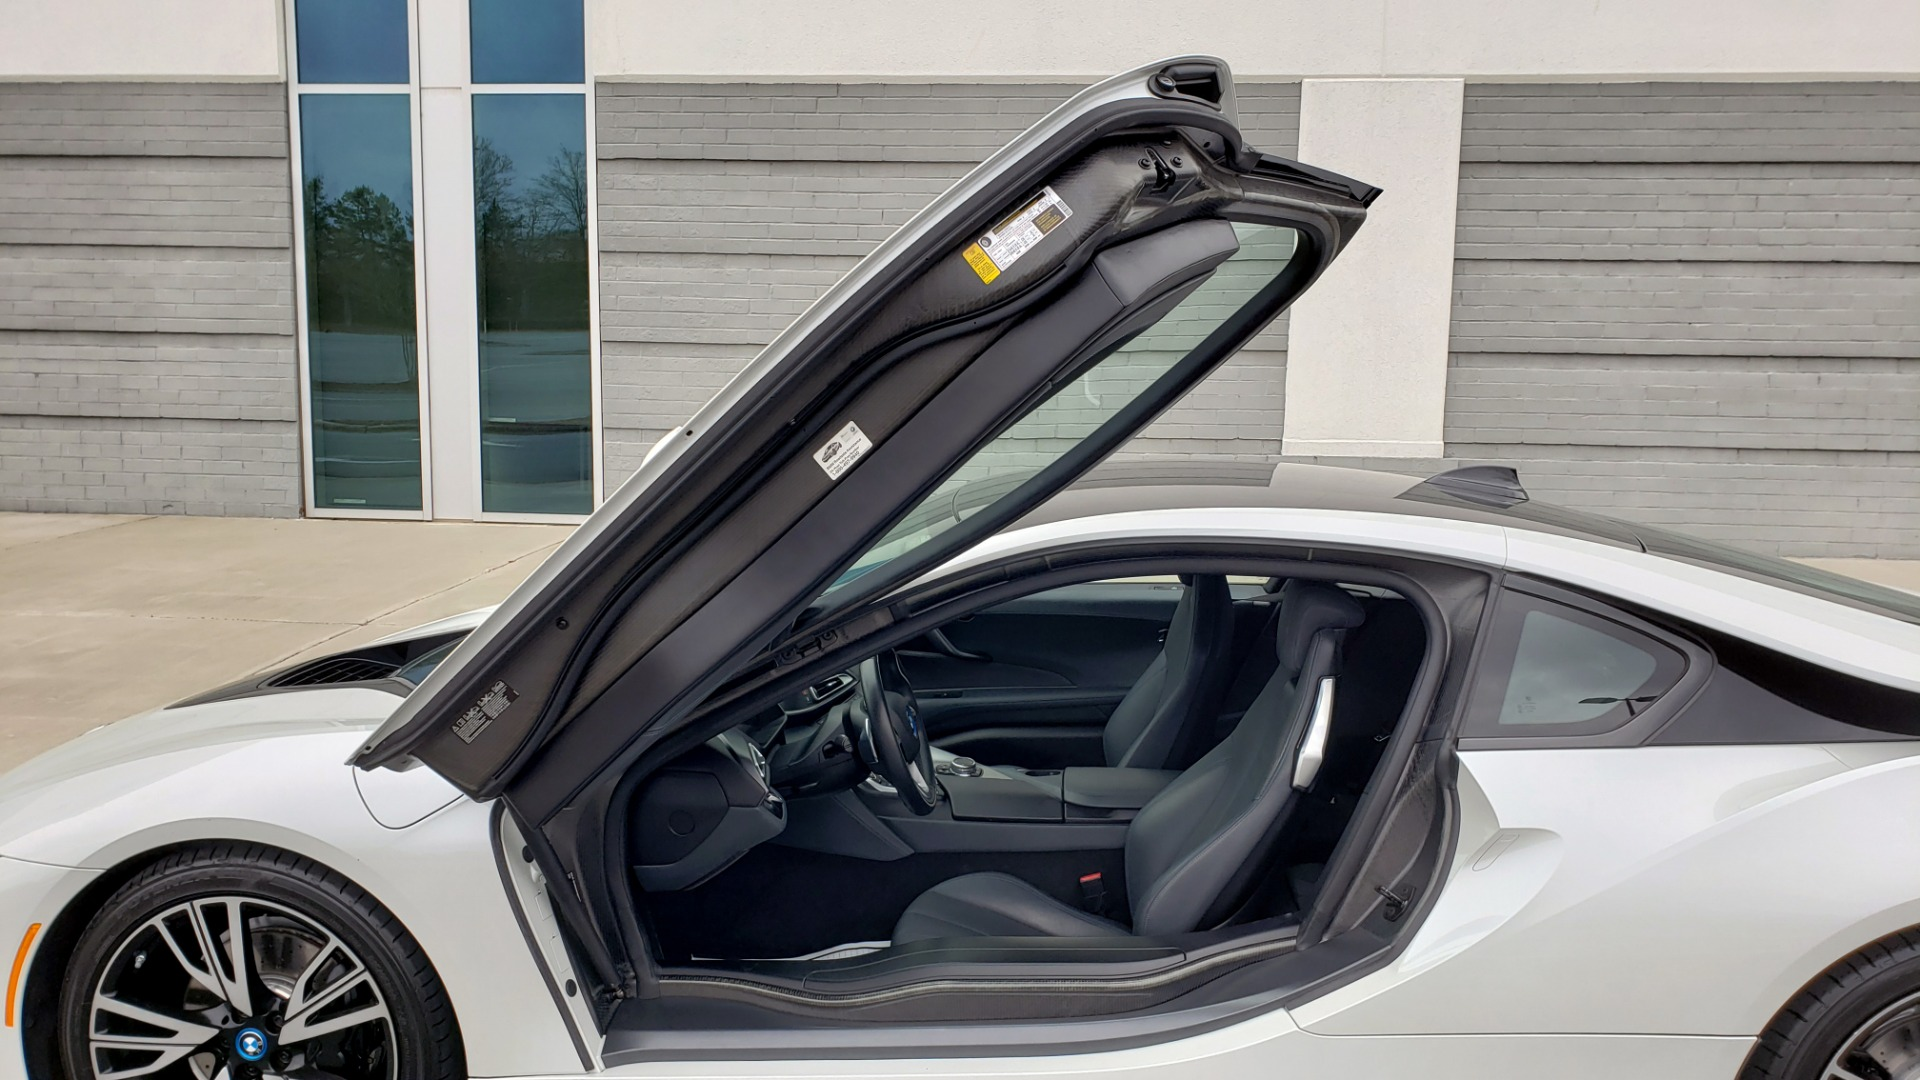 Used 2016 BMW i8 COUPE / GIGA WORLD / NAV / HUD / 20IN WHEELS / REARVIEW for sale Sold at Formula Imports in Charlotte NC 28227 13